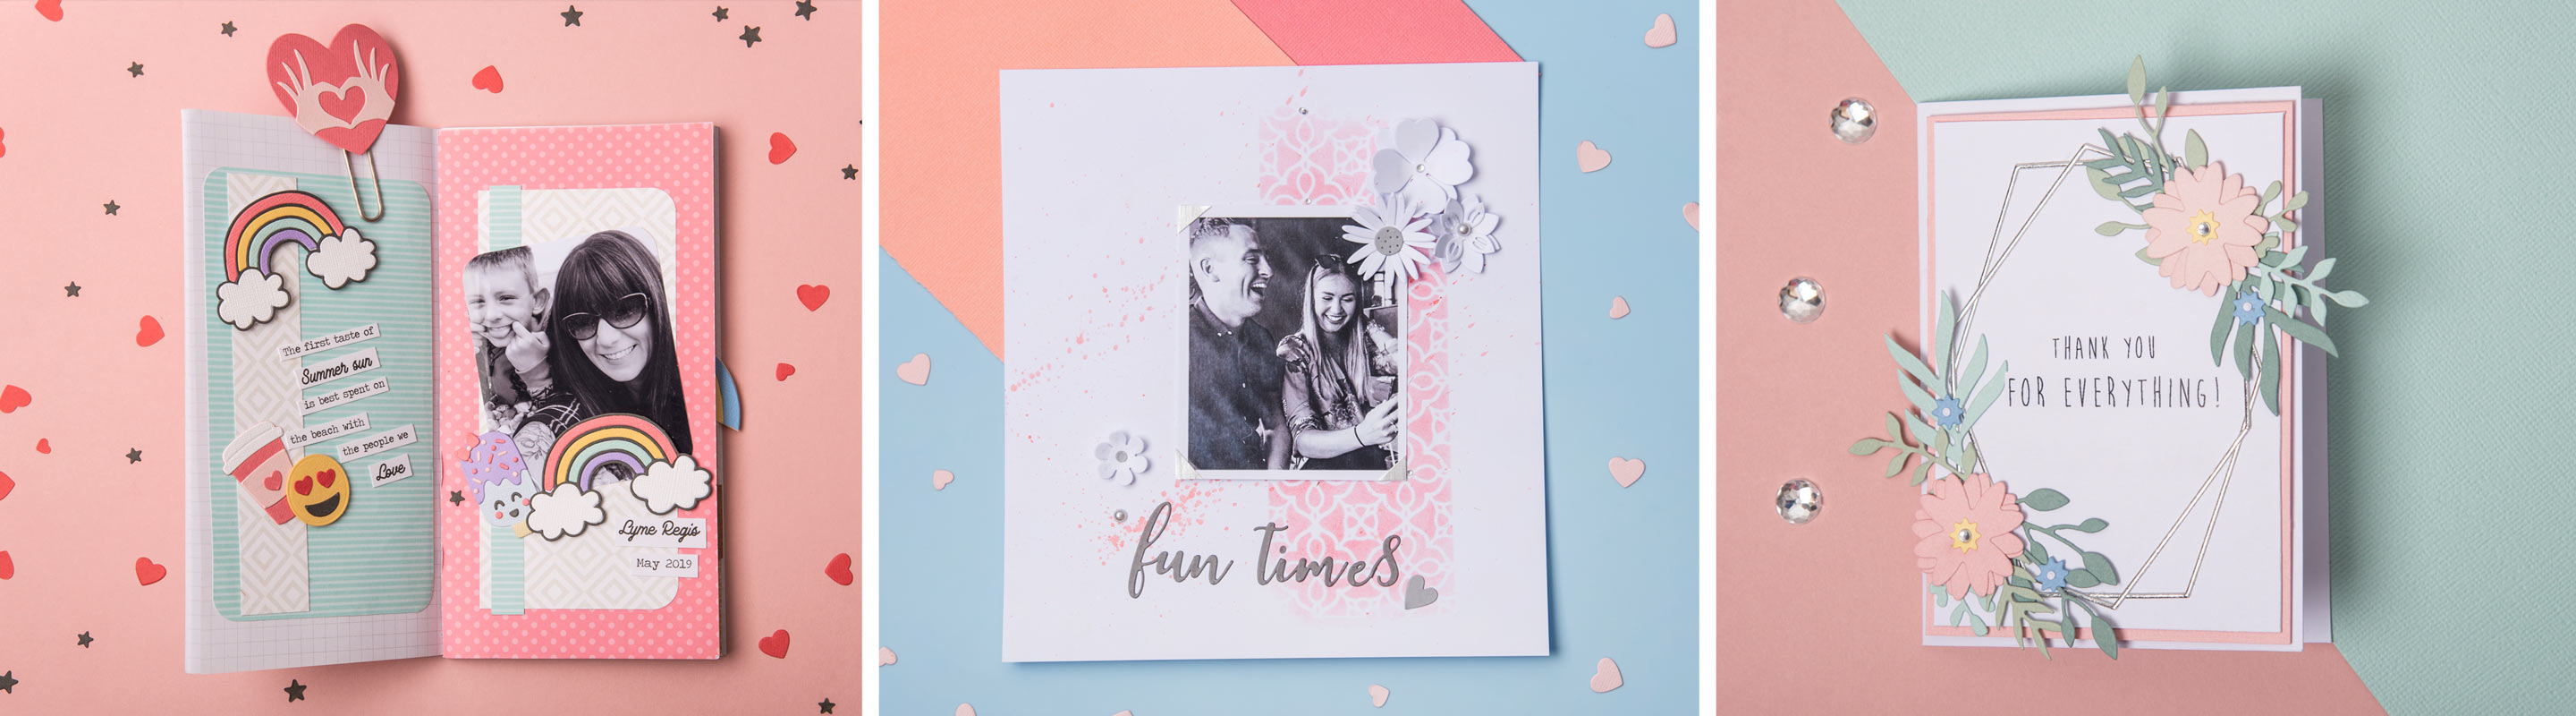 valentines day inspiration, gifts for valentines day, valentines day cards